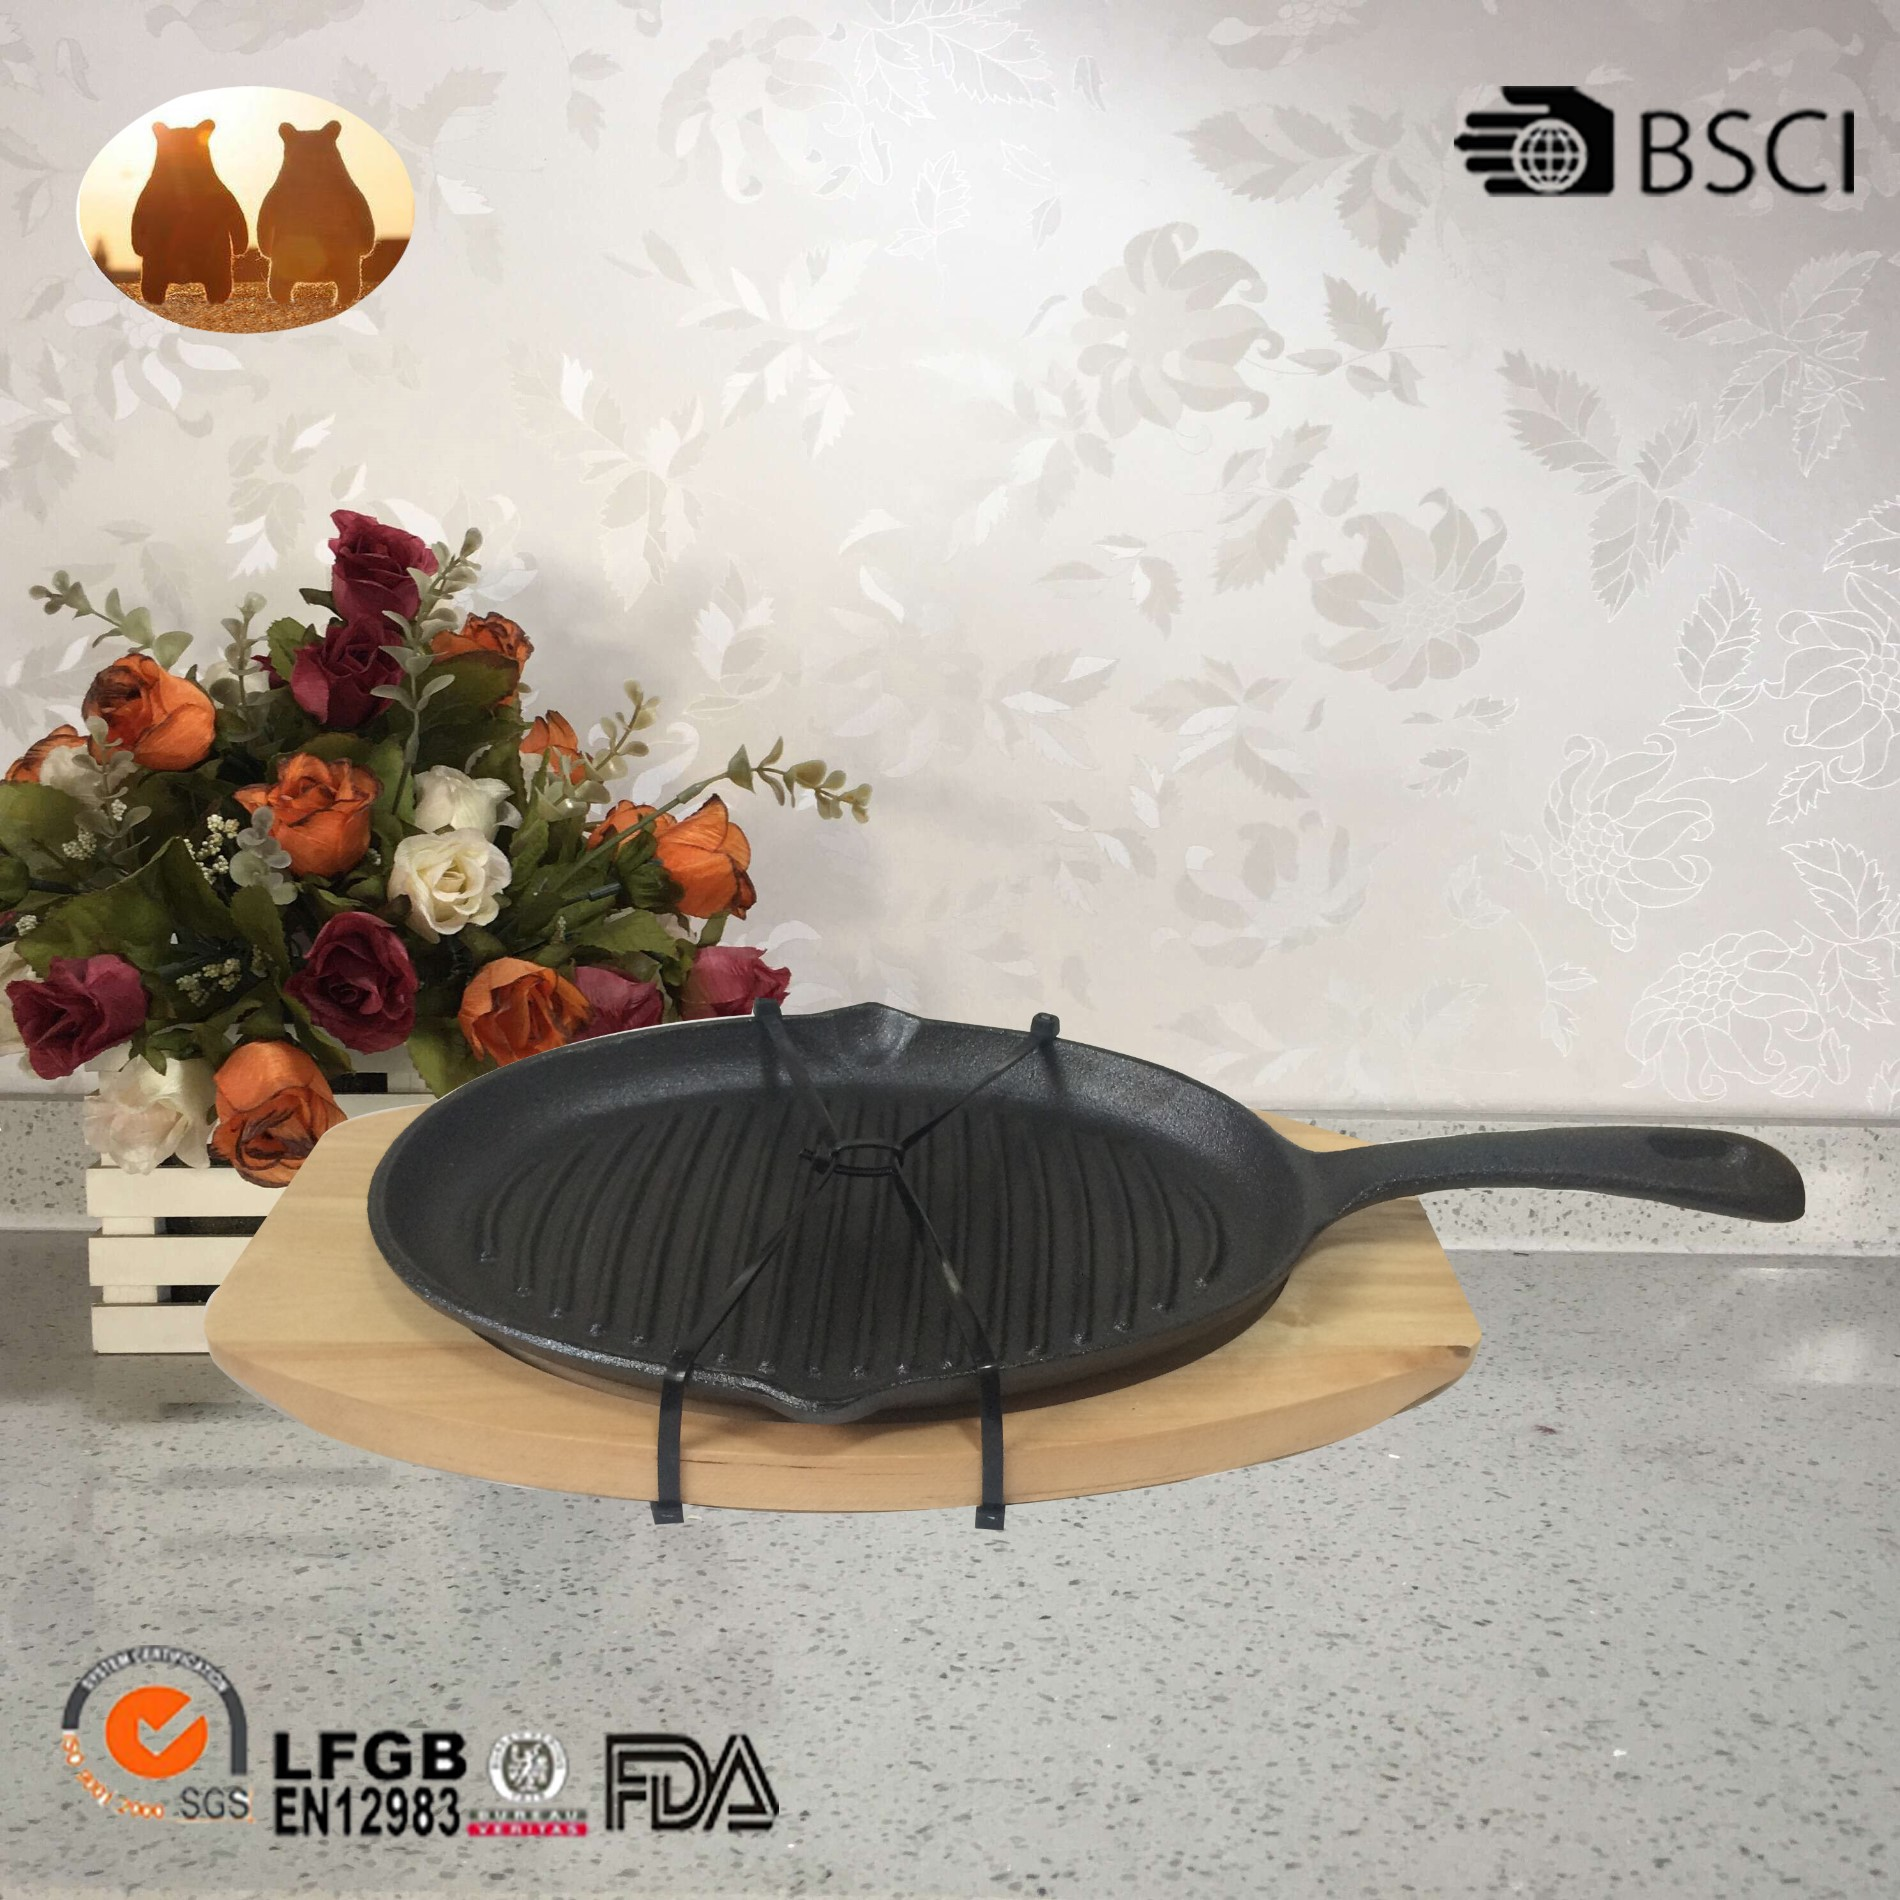 Cast Iron Pan With Wooden Tray